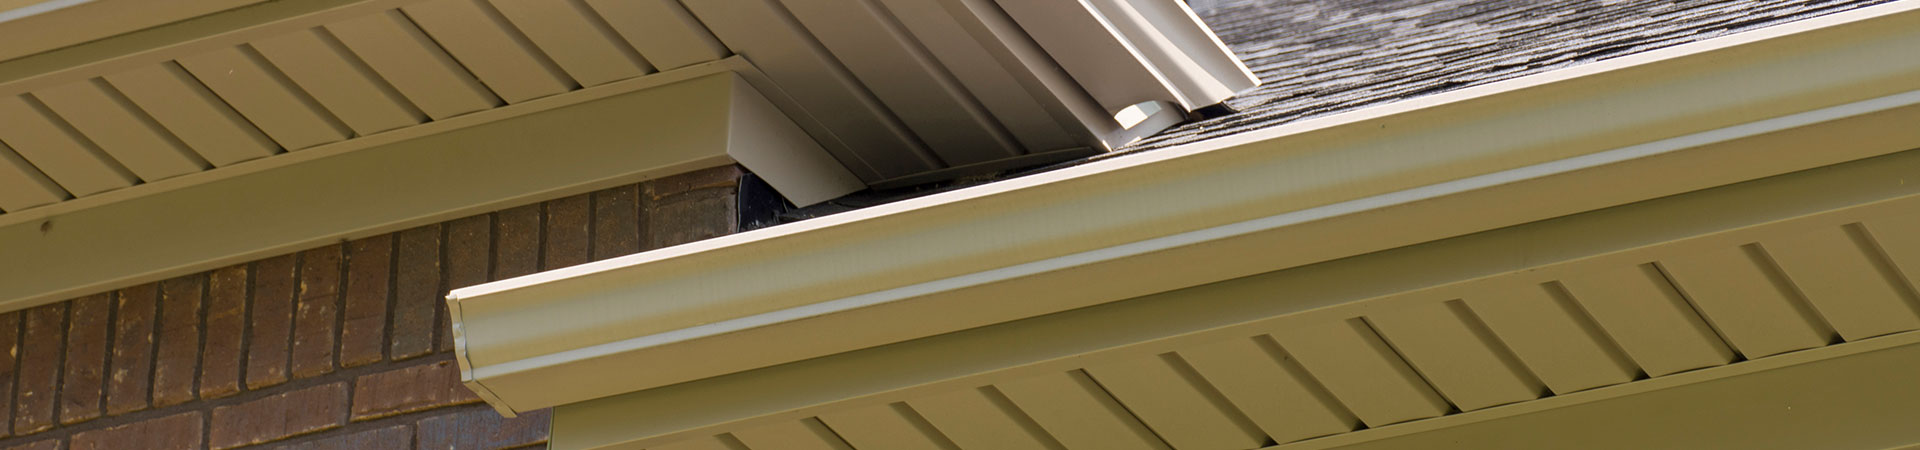 commercial-gutter-company